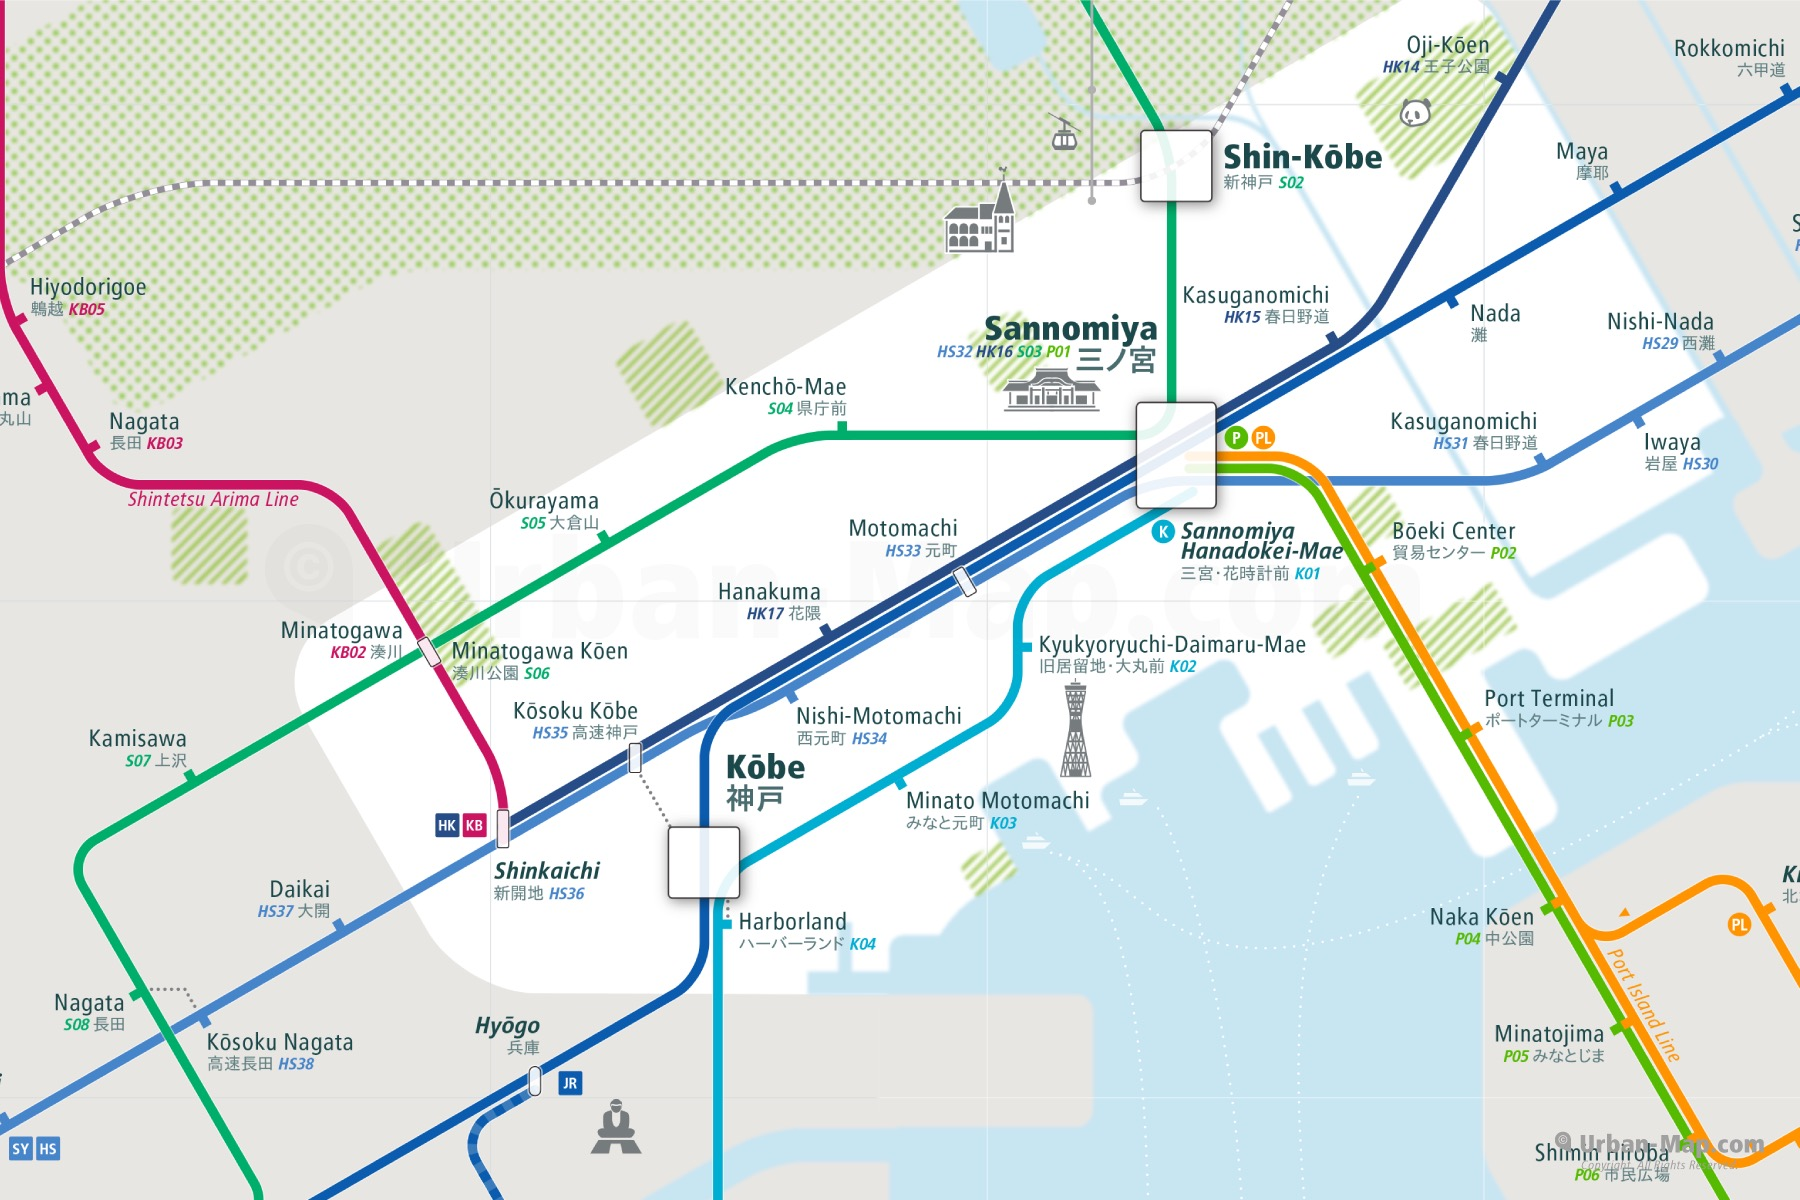 Kobe Rail Map - A Smart City Guide Map, Even Offline!  Train Map on mta rail map, mumbai suburban railway map, rail lines map, new york city mta map,